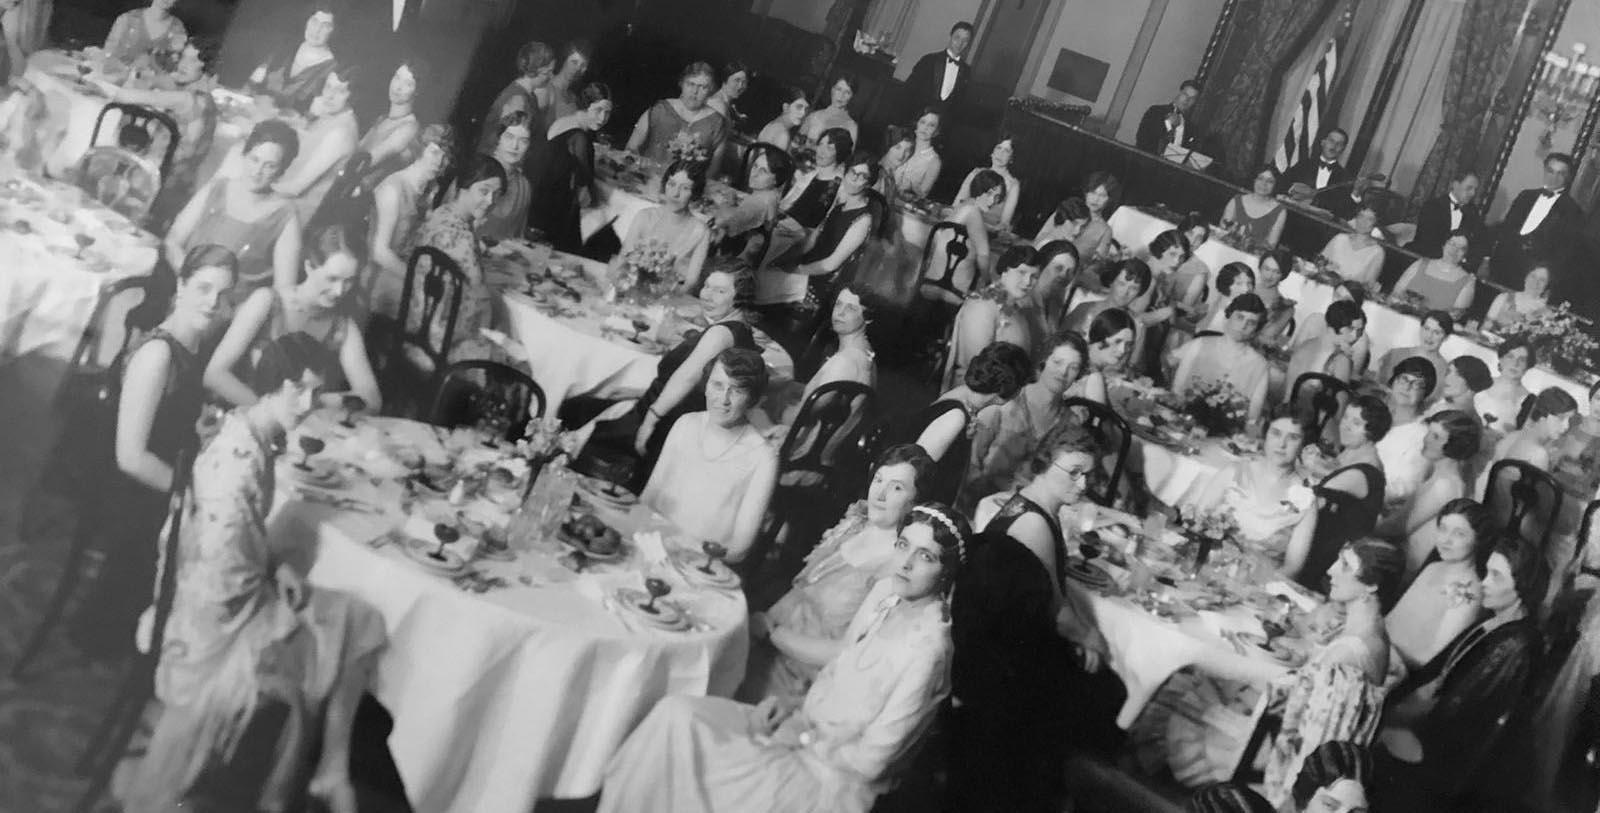 Image of Historic Event in Ballroom, Lord Baltimore Hotel in Baltimore, Maryland, 1928, Member of Historic Hotels of America, Discover